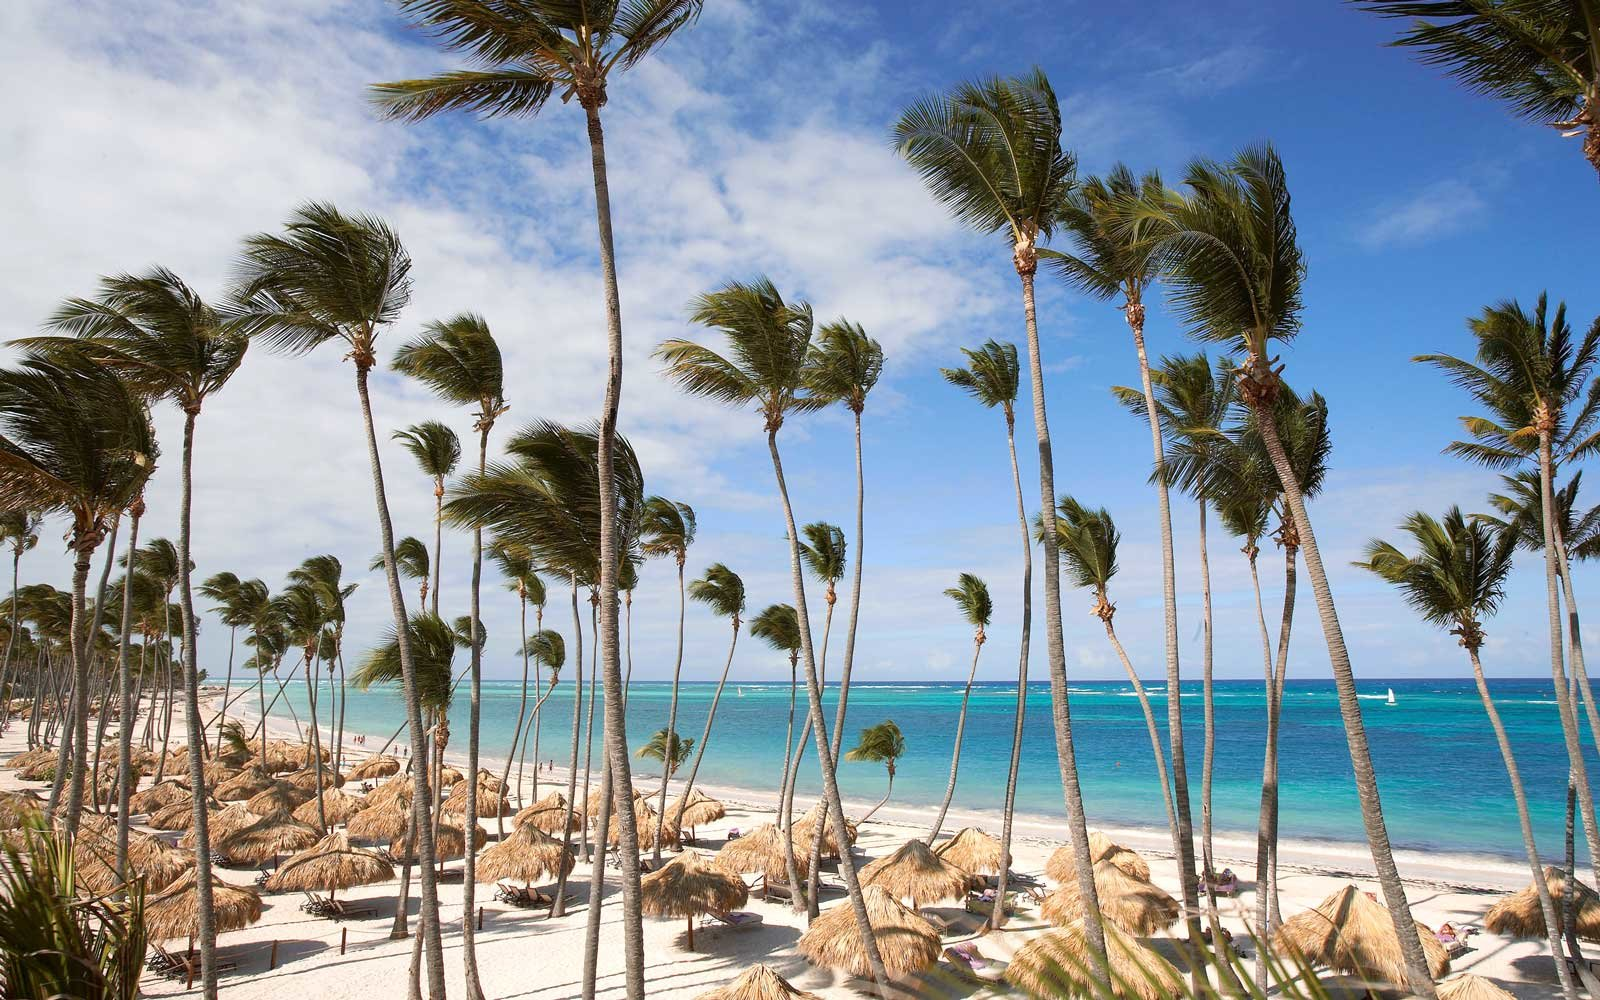 Reserve at Paradisus Palma Real in the Dominican Republic